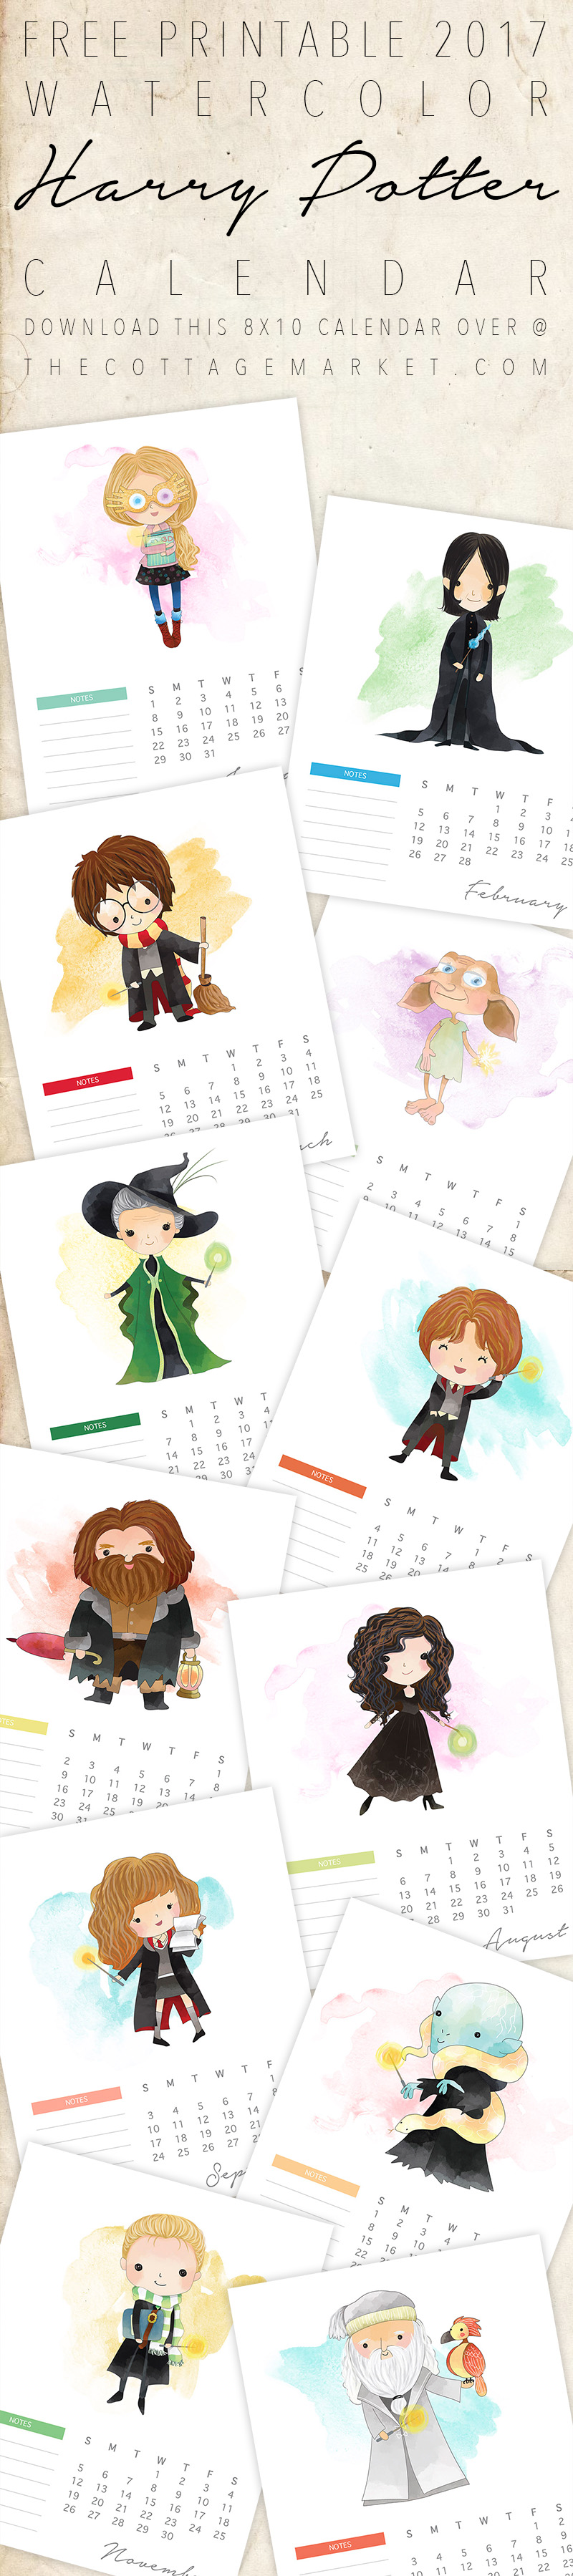 This free printable Harry Potter calendar is has all of your favorite characters as adorable watercolor cartoons